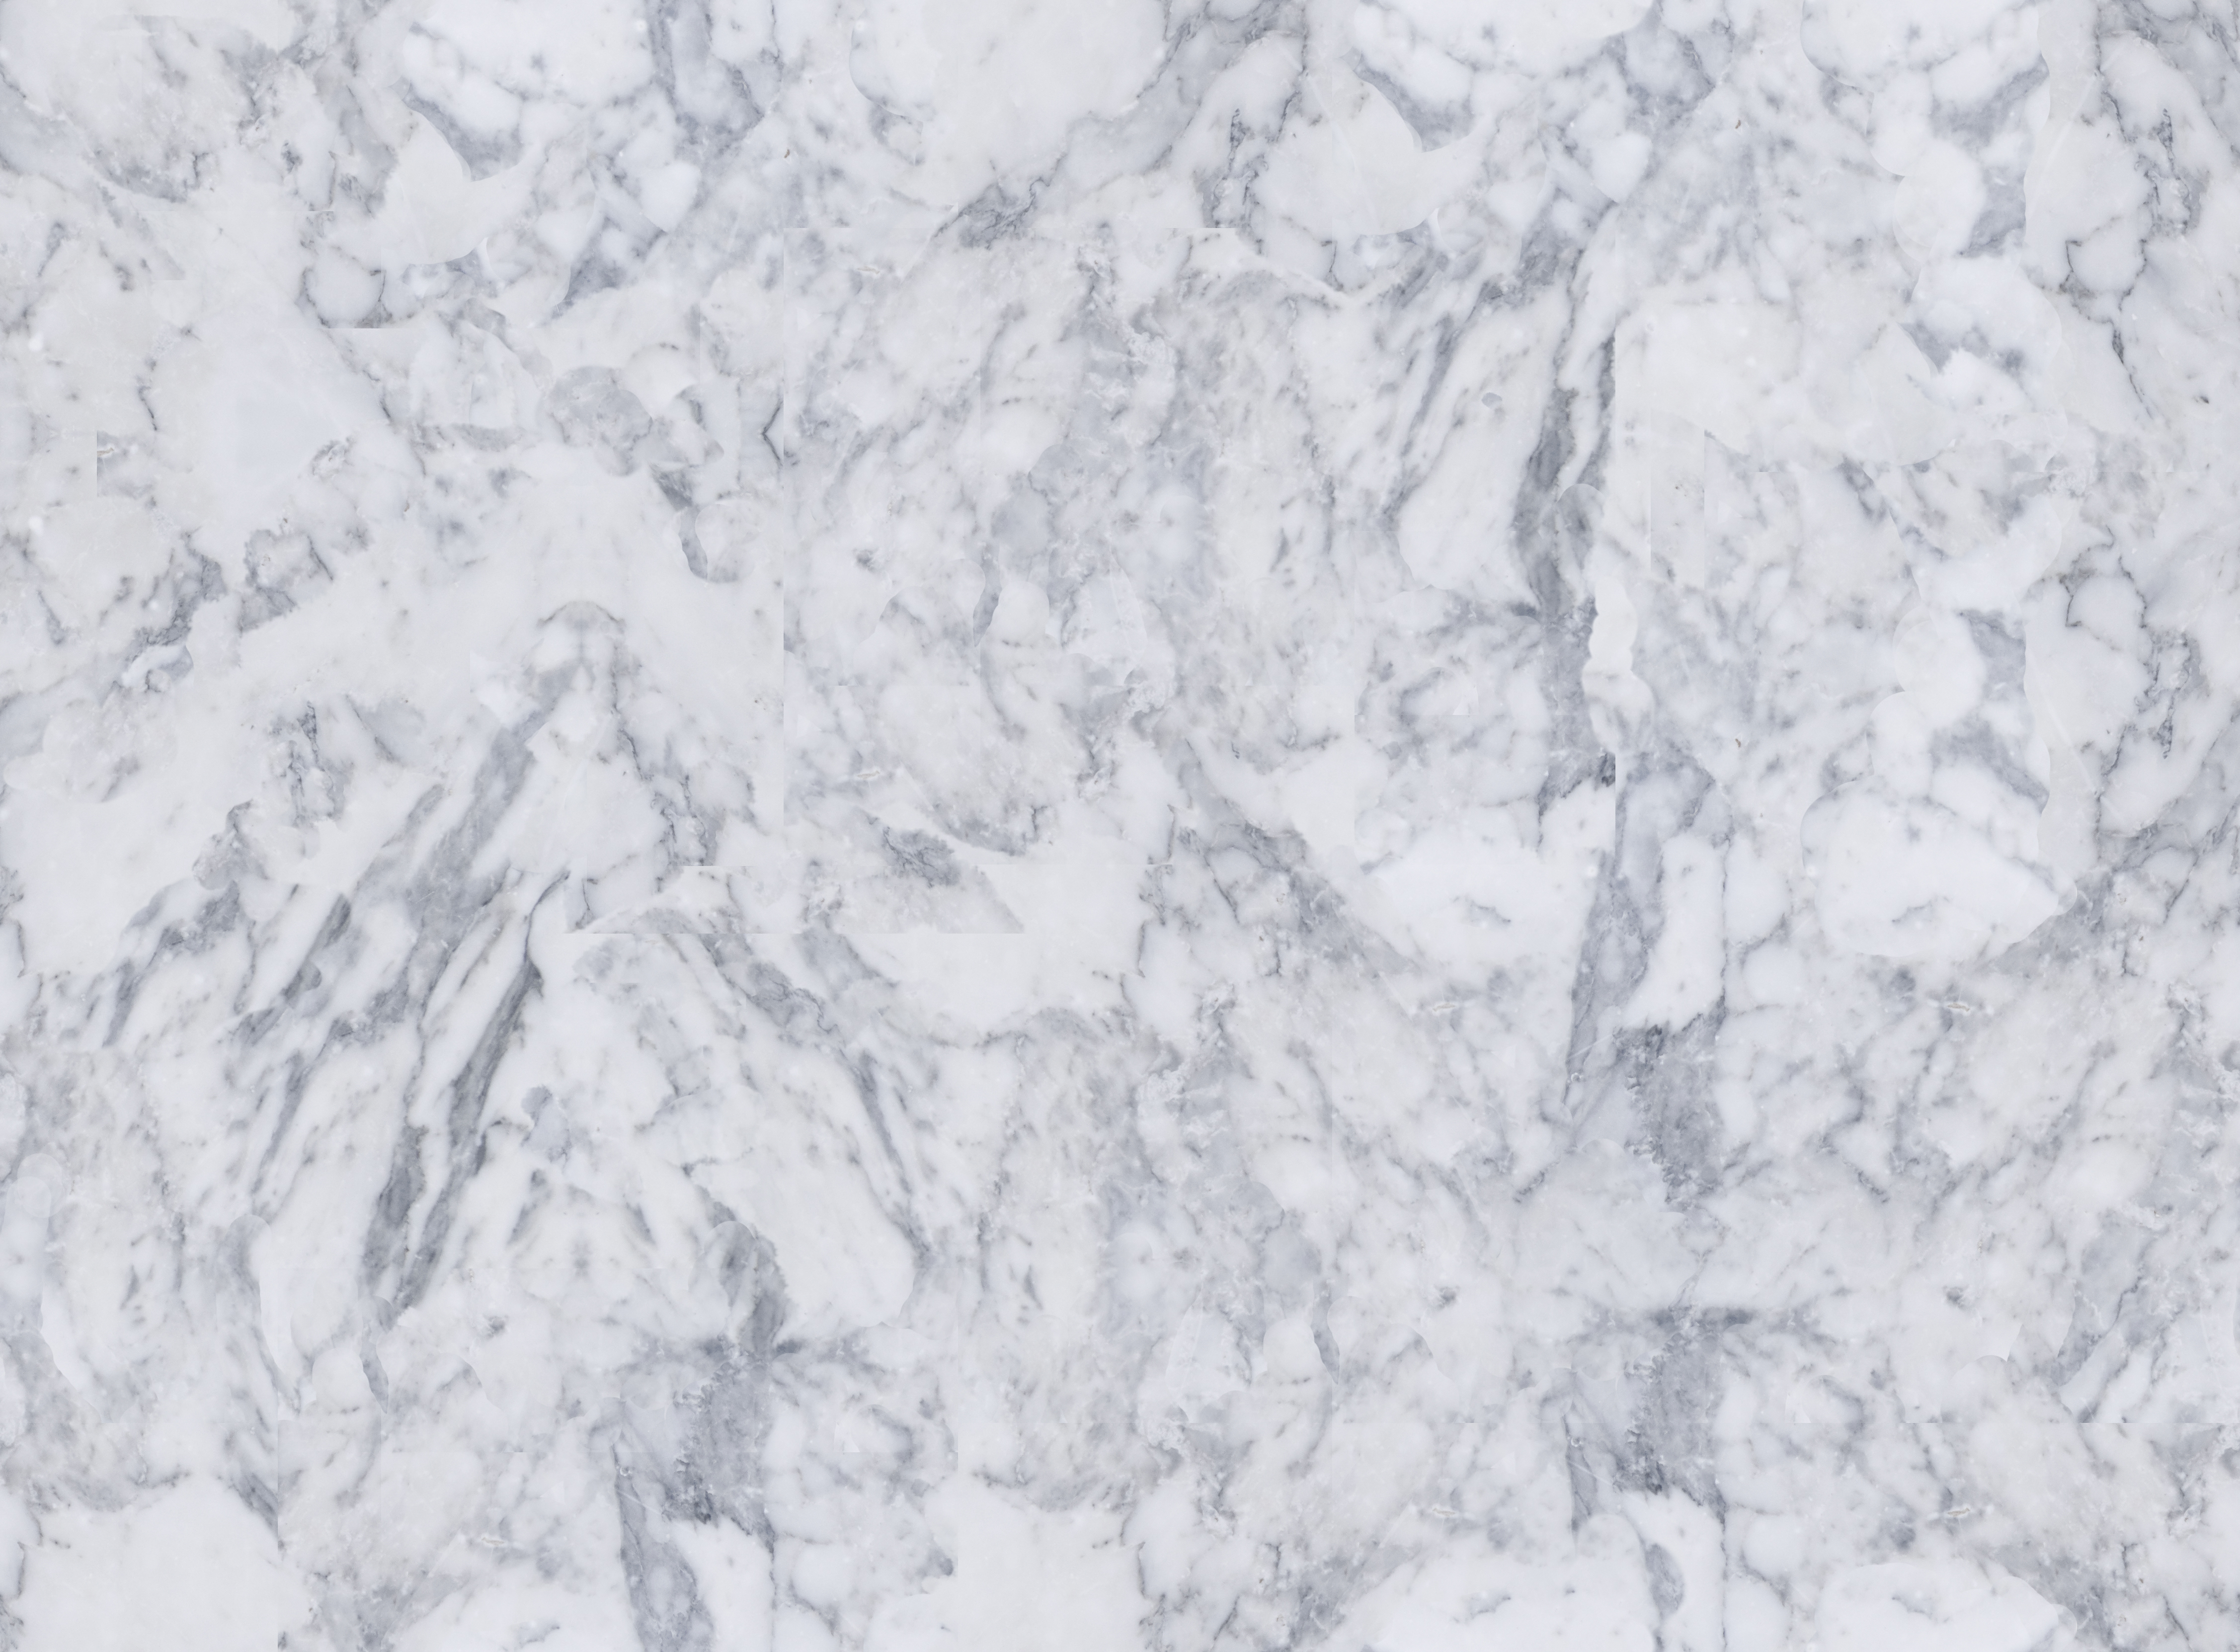 Tileable Marble Texture For Vray Sss Learn 3d Arch Viz